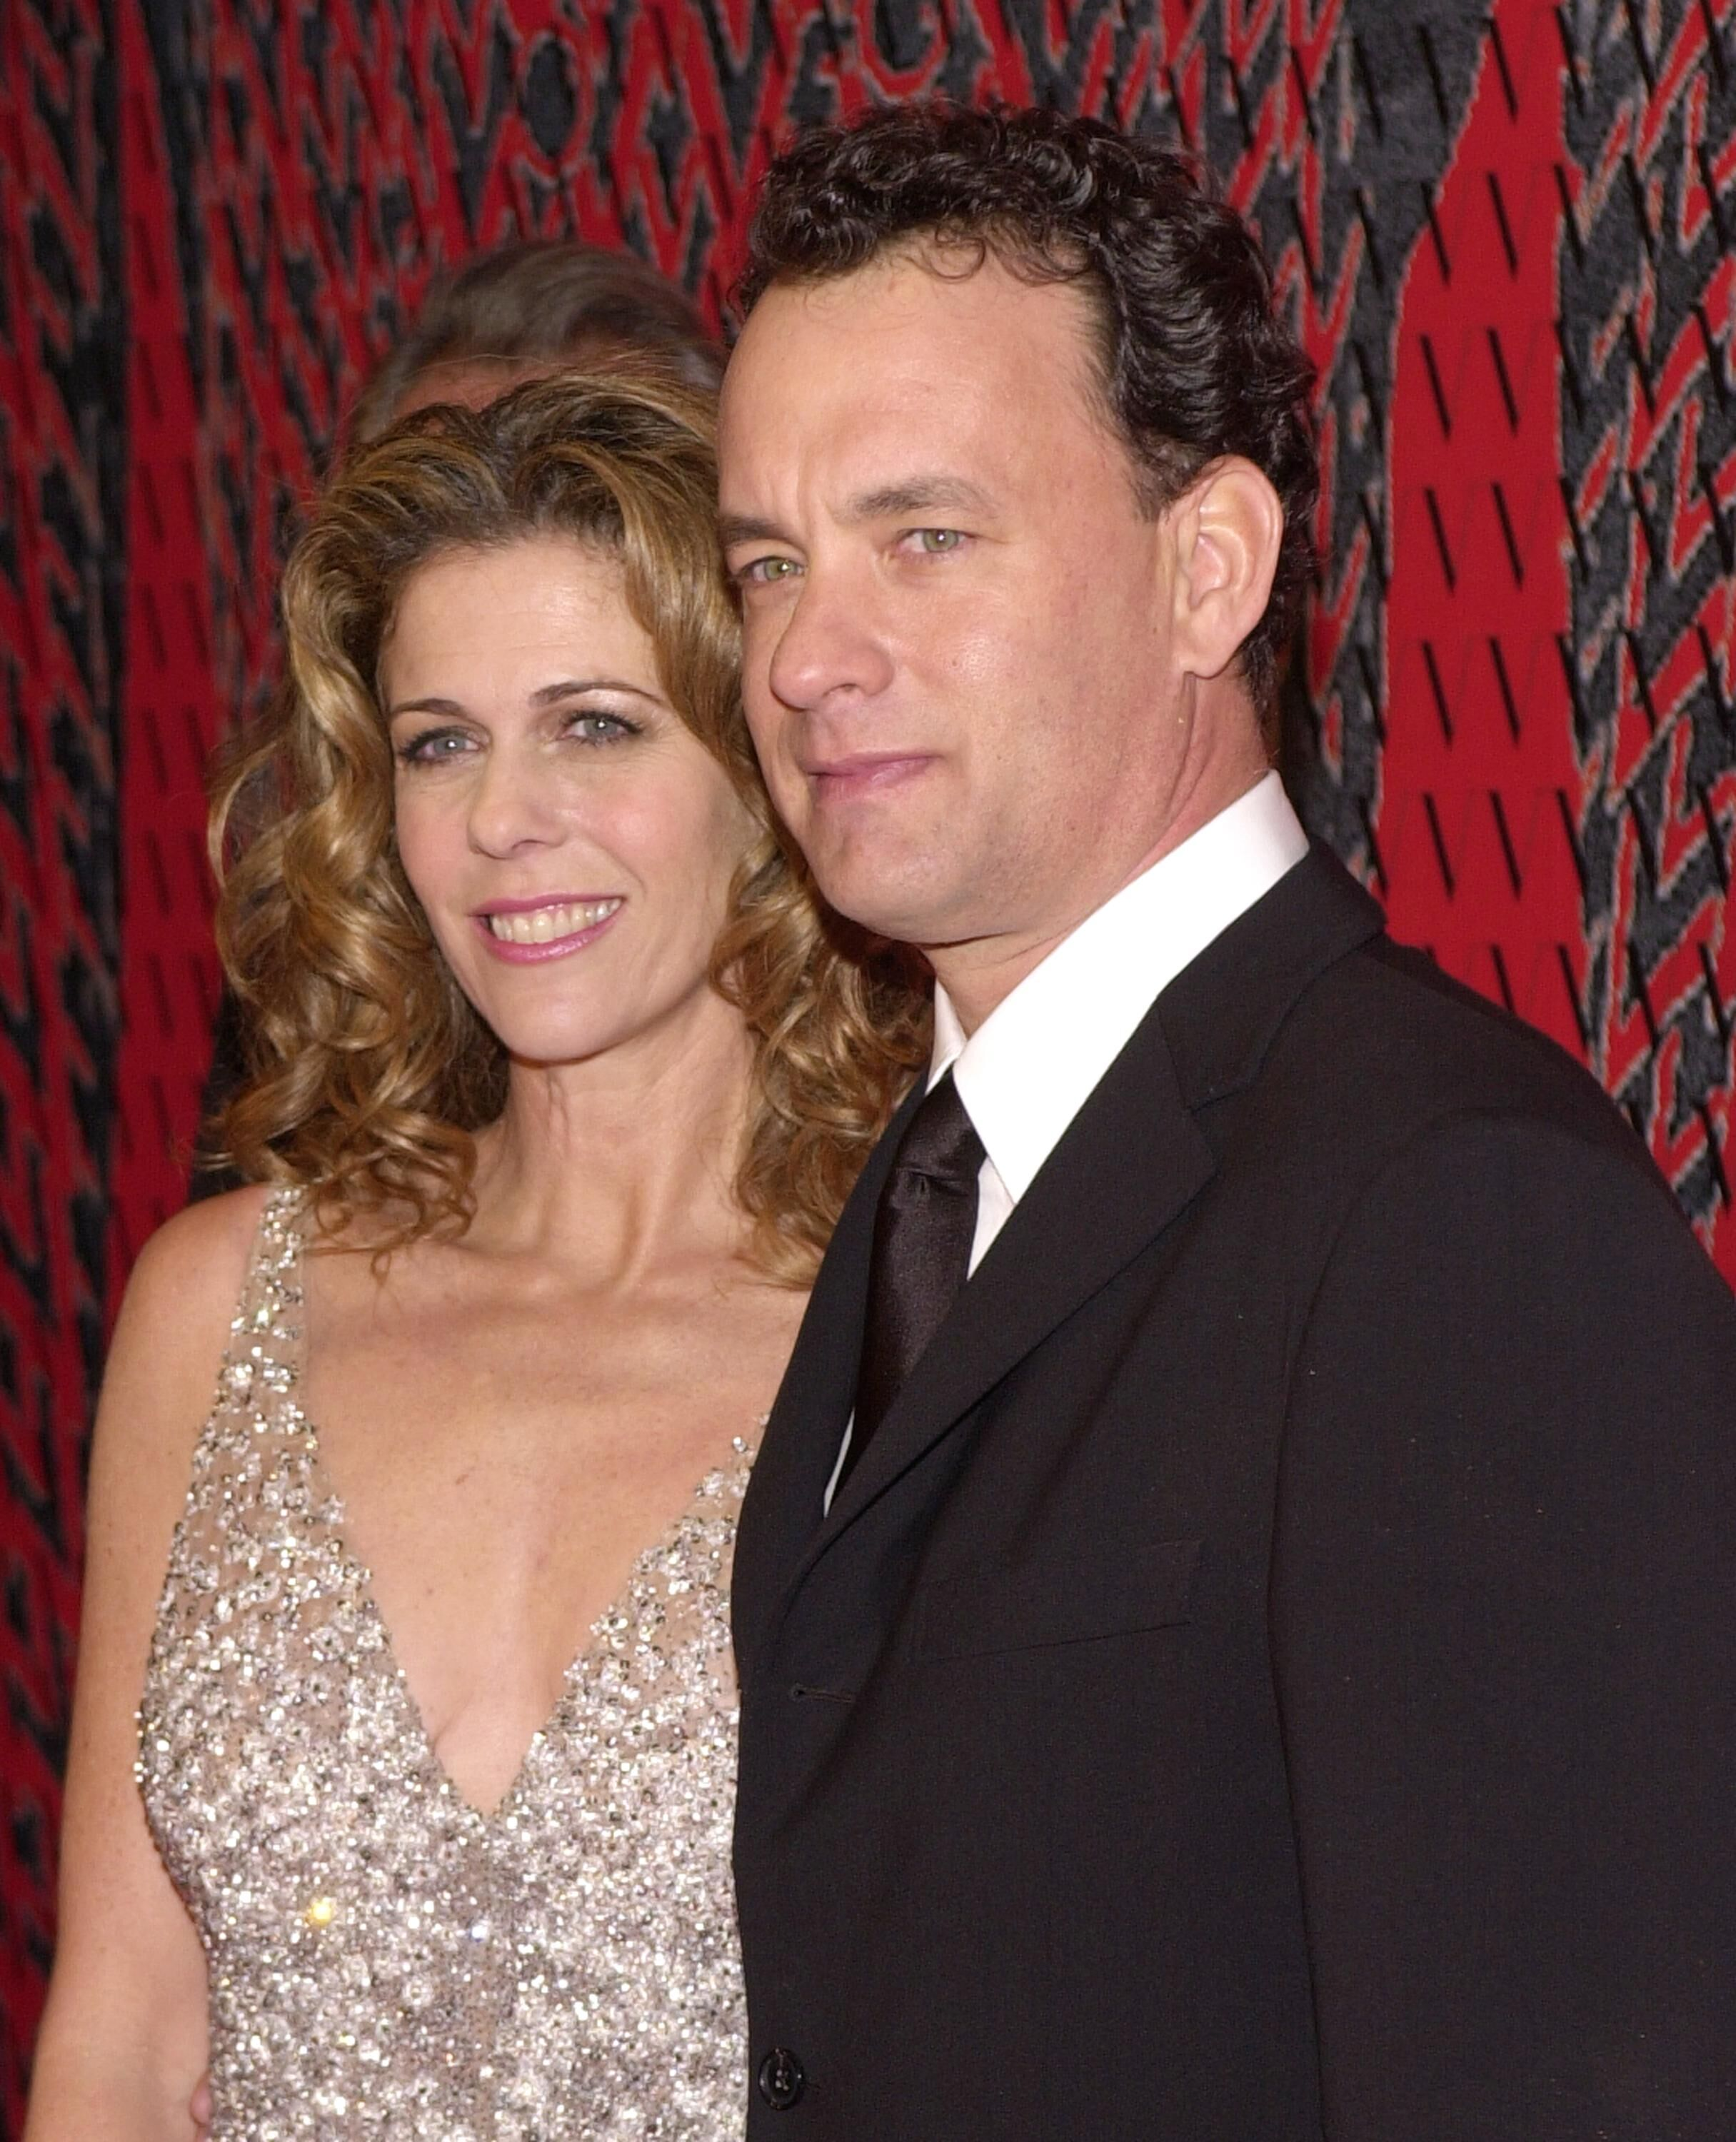 Tom Hanks and wife Rita Wilson arrive at Valentino's 40th Anniversary. | Source: Getty Images